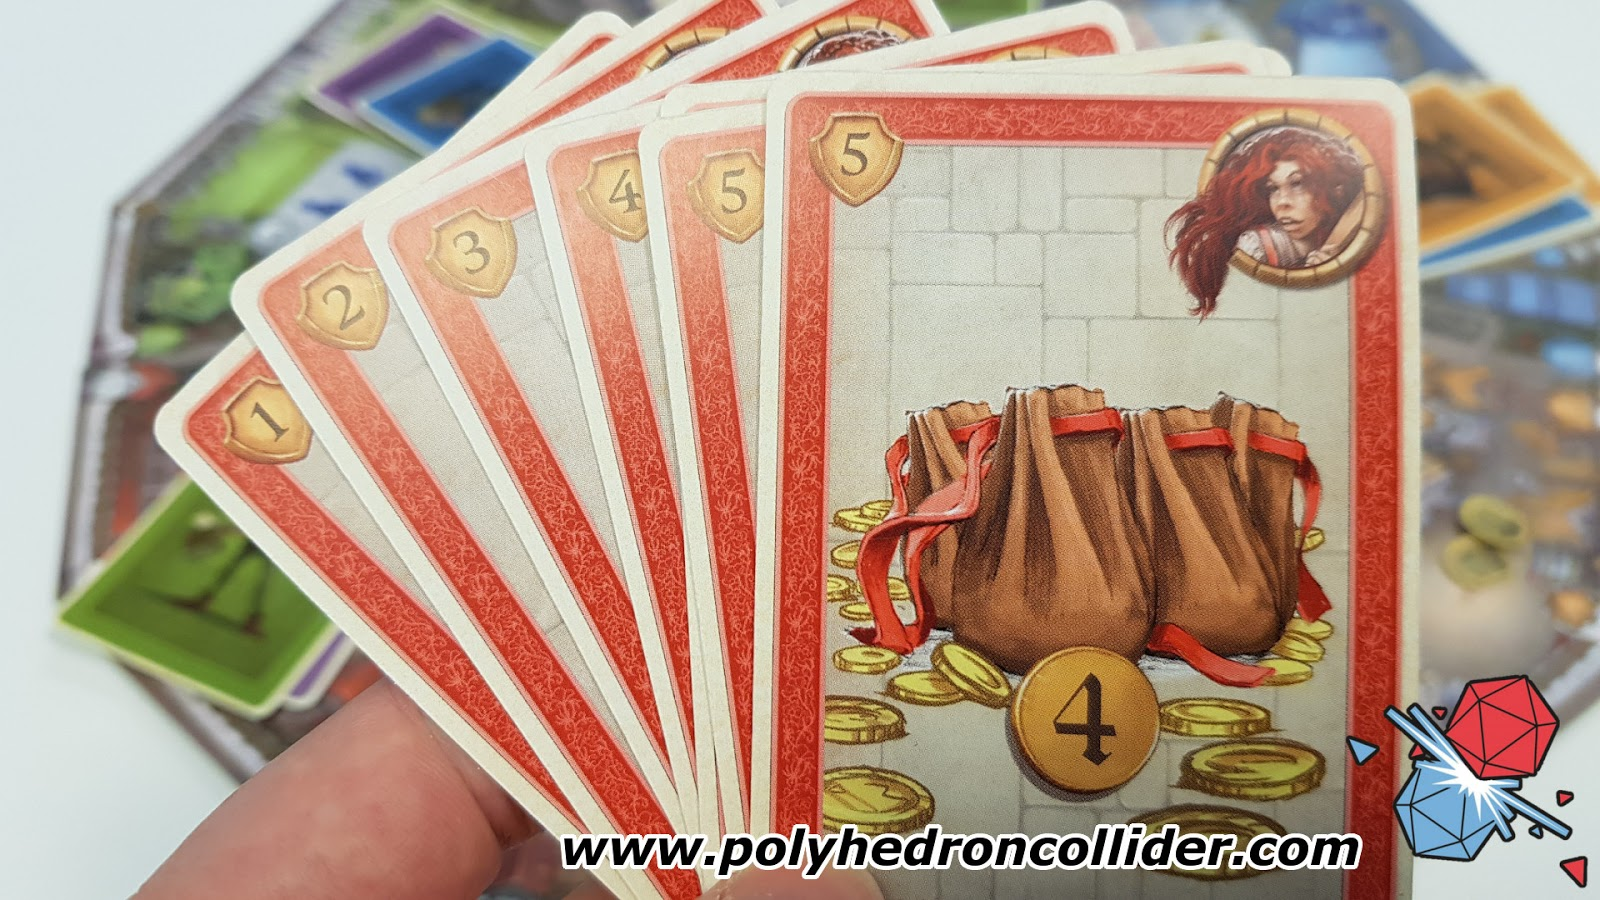 Polyhedron Collider Slyville Board Game Review - Hand Of Cards